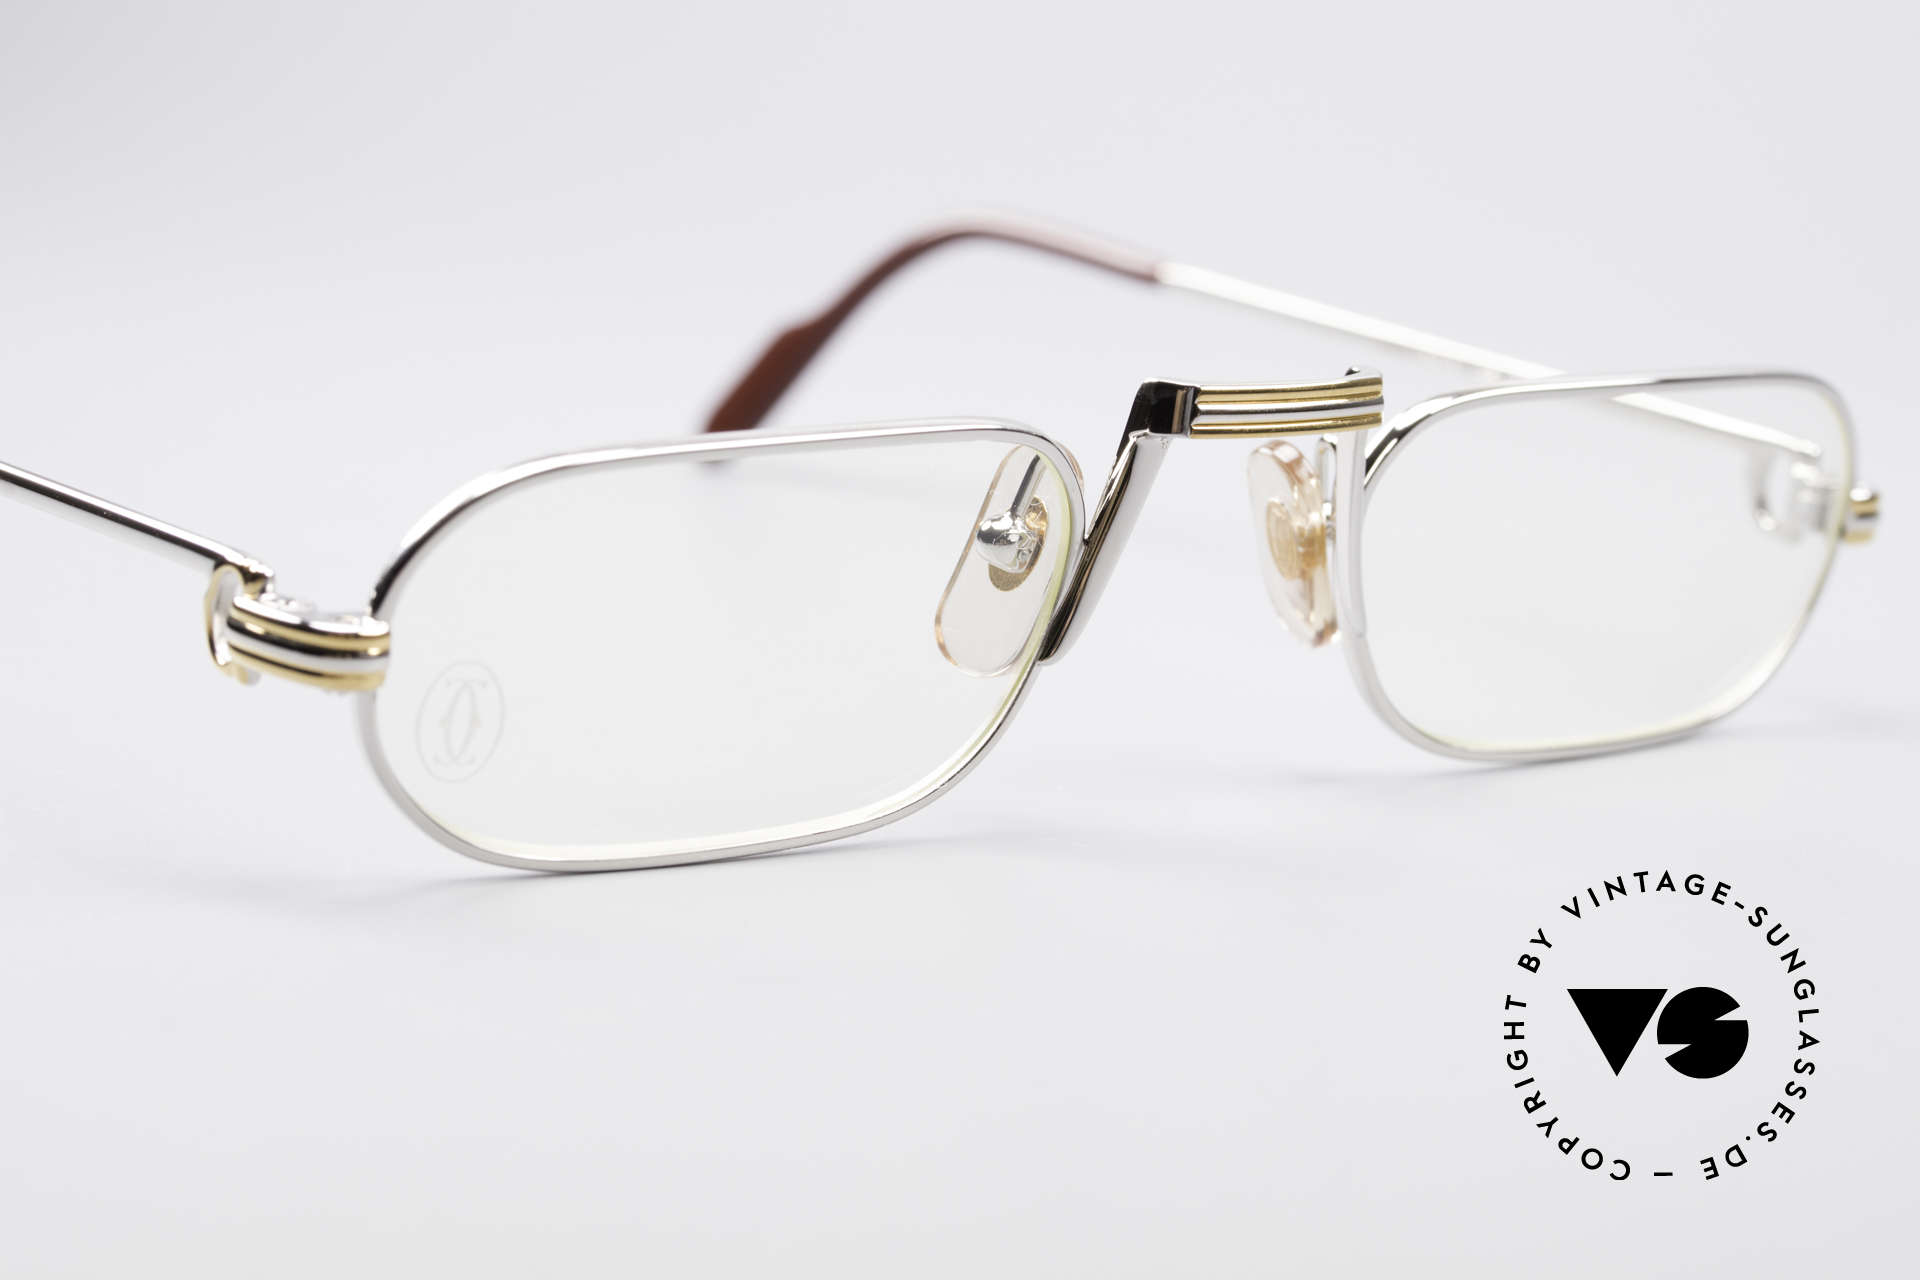 Cartier Demi Lune LC Platinum Reading Glasses, rare & expensive edition with platinum finish; pure luxury, Made for Men